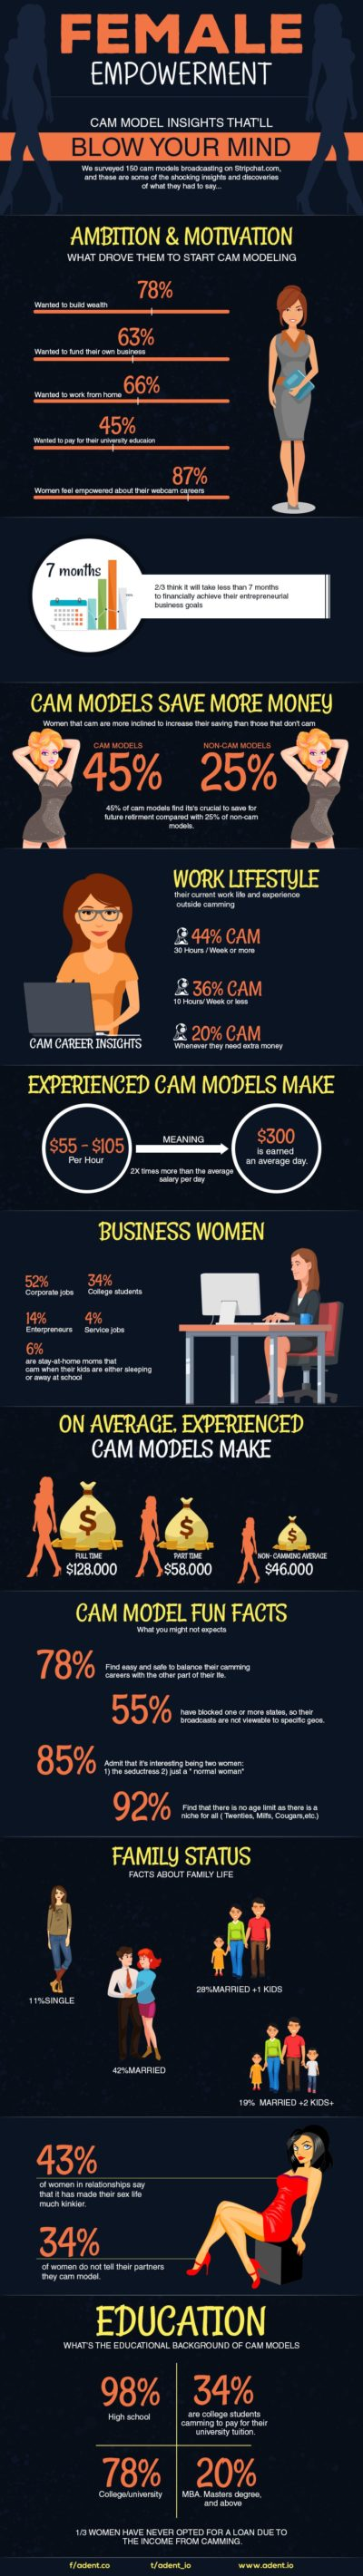 Female Empowerment — Cam Model Insights That'll Blow Your Mind